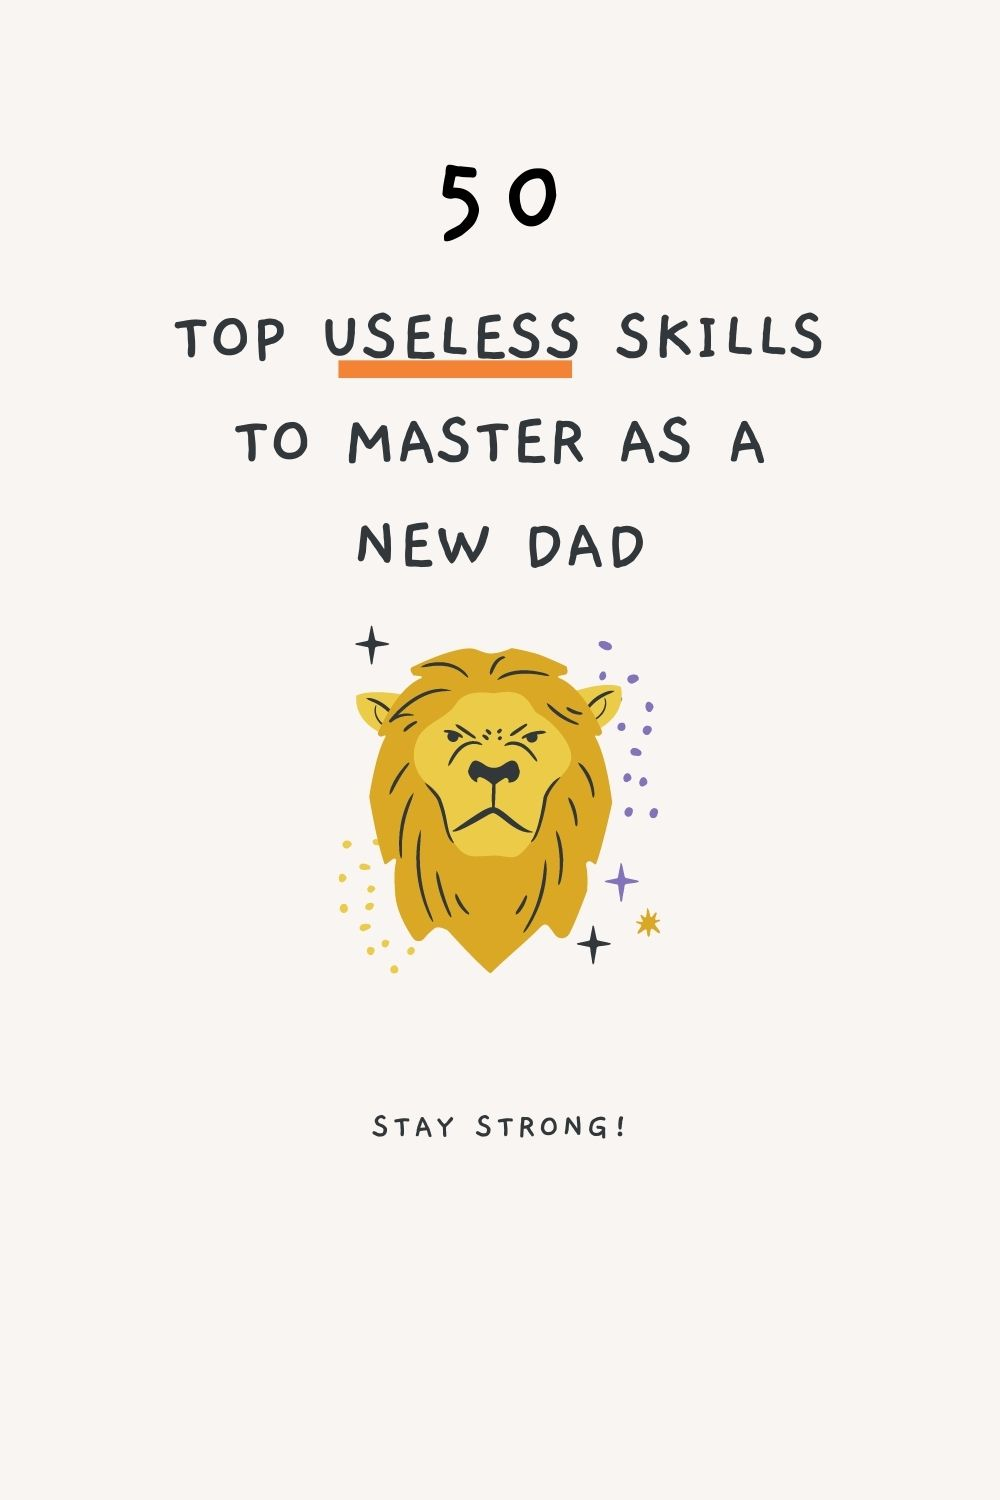 Cover image for post on skills to master as a new dad